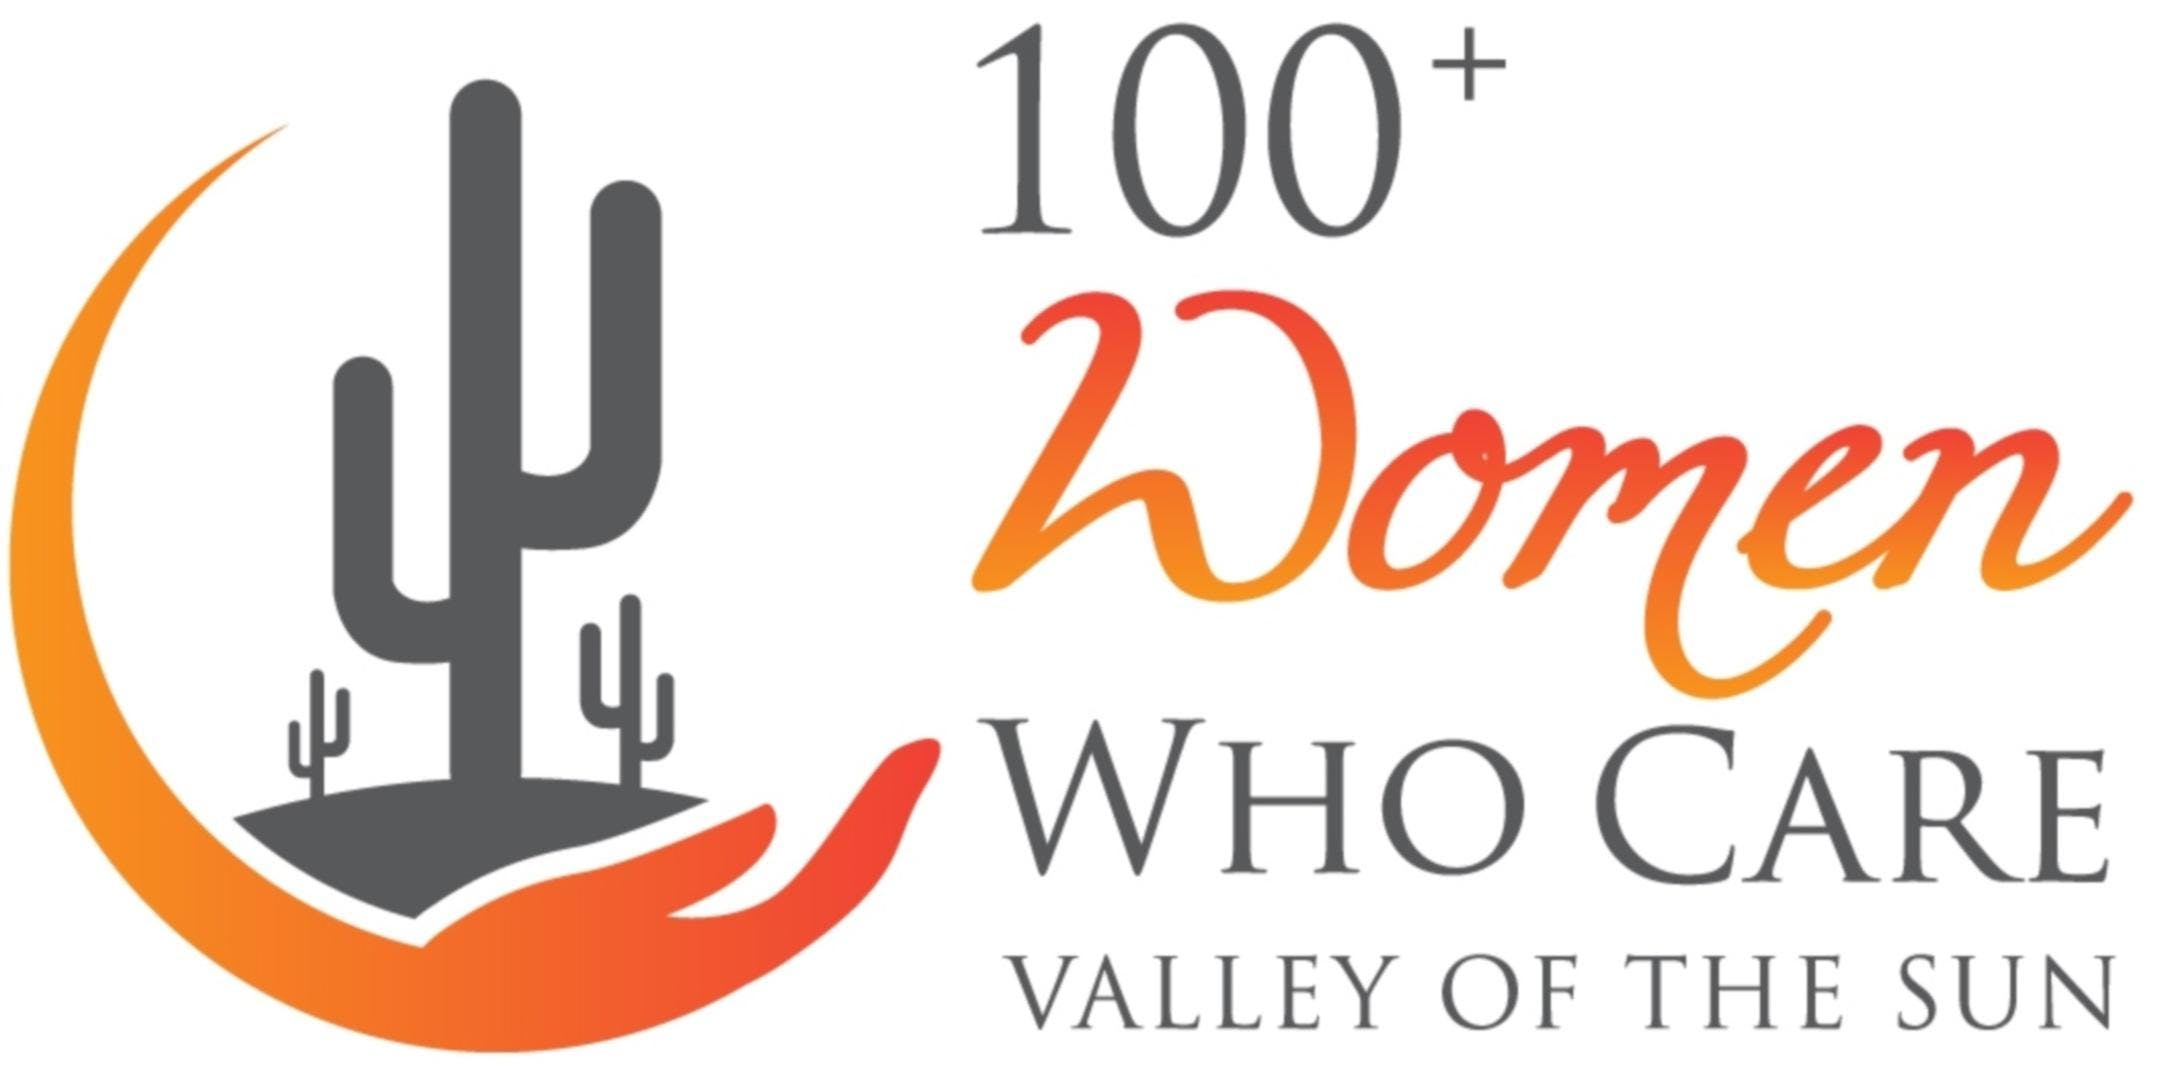 100+ Women Who Care Valley of the Sun - Q2 Giving Circle in Scottsdale